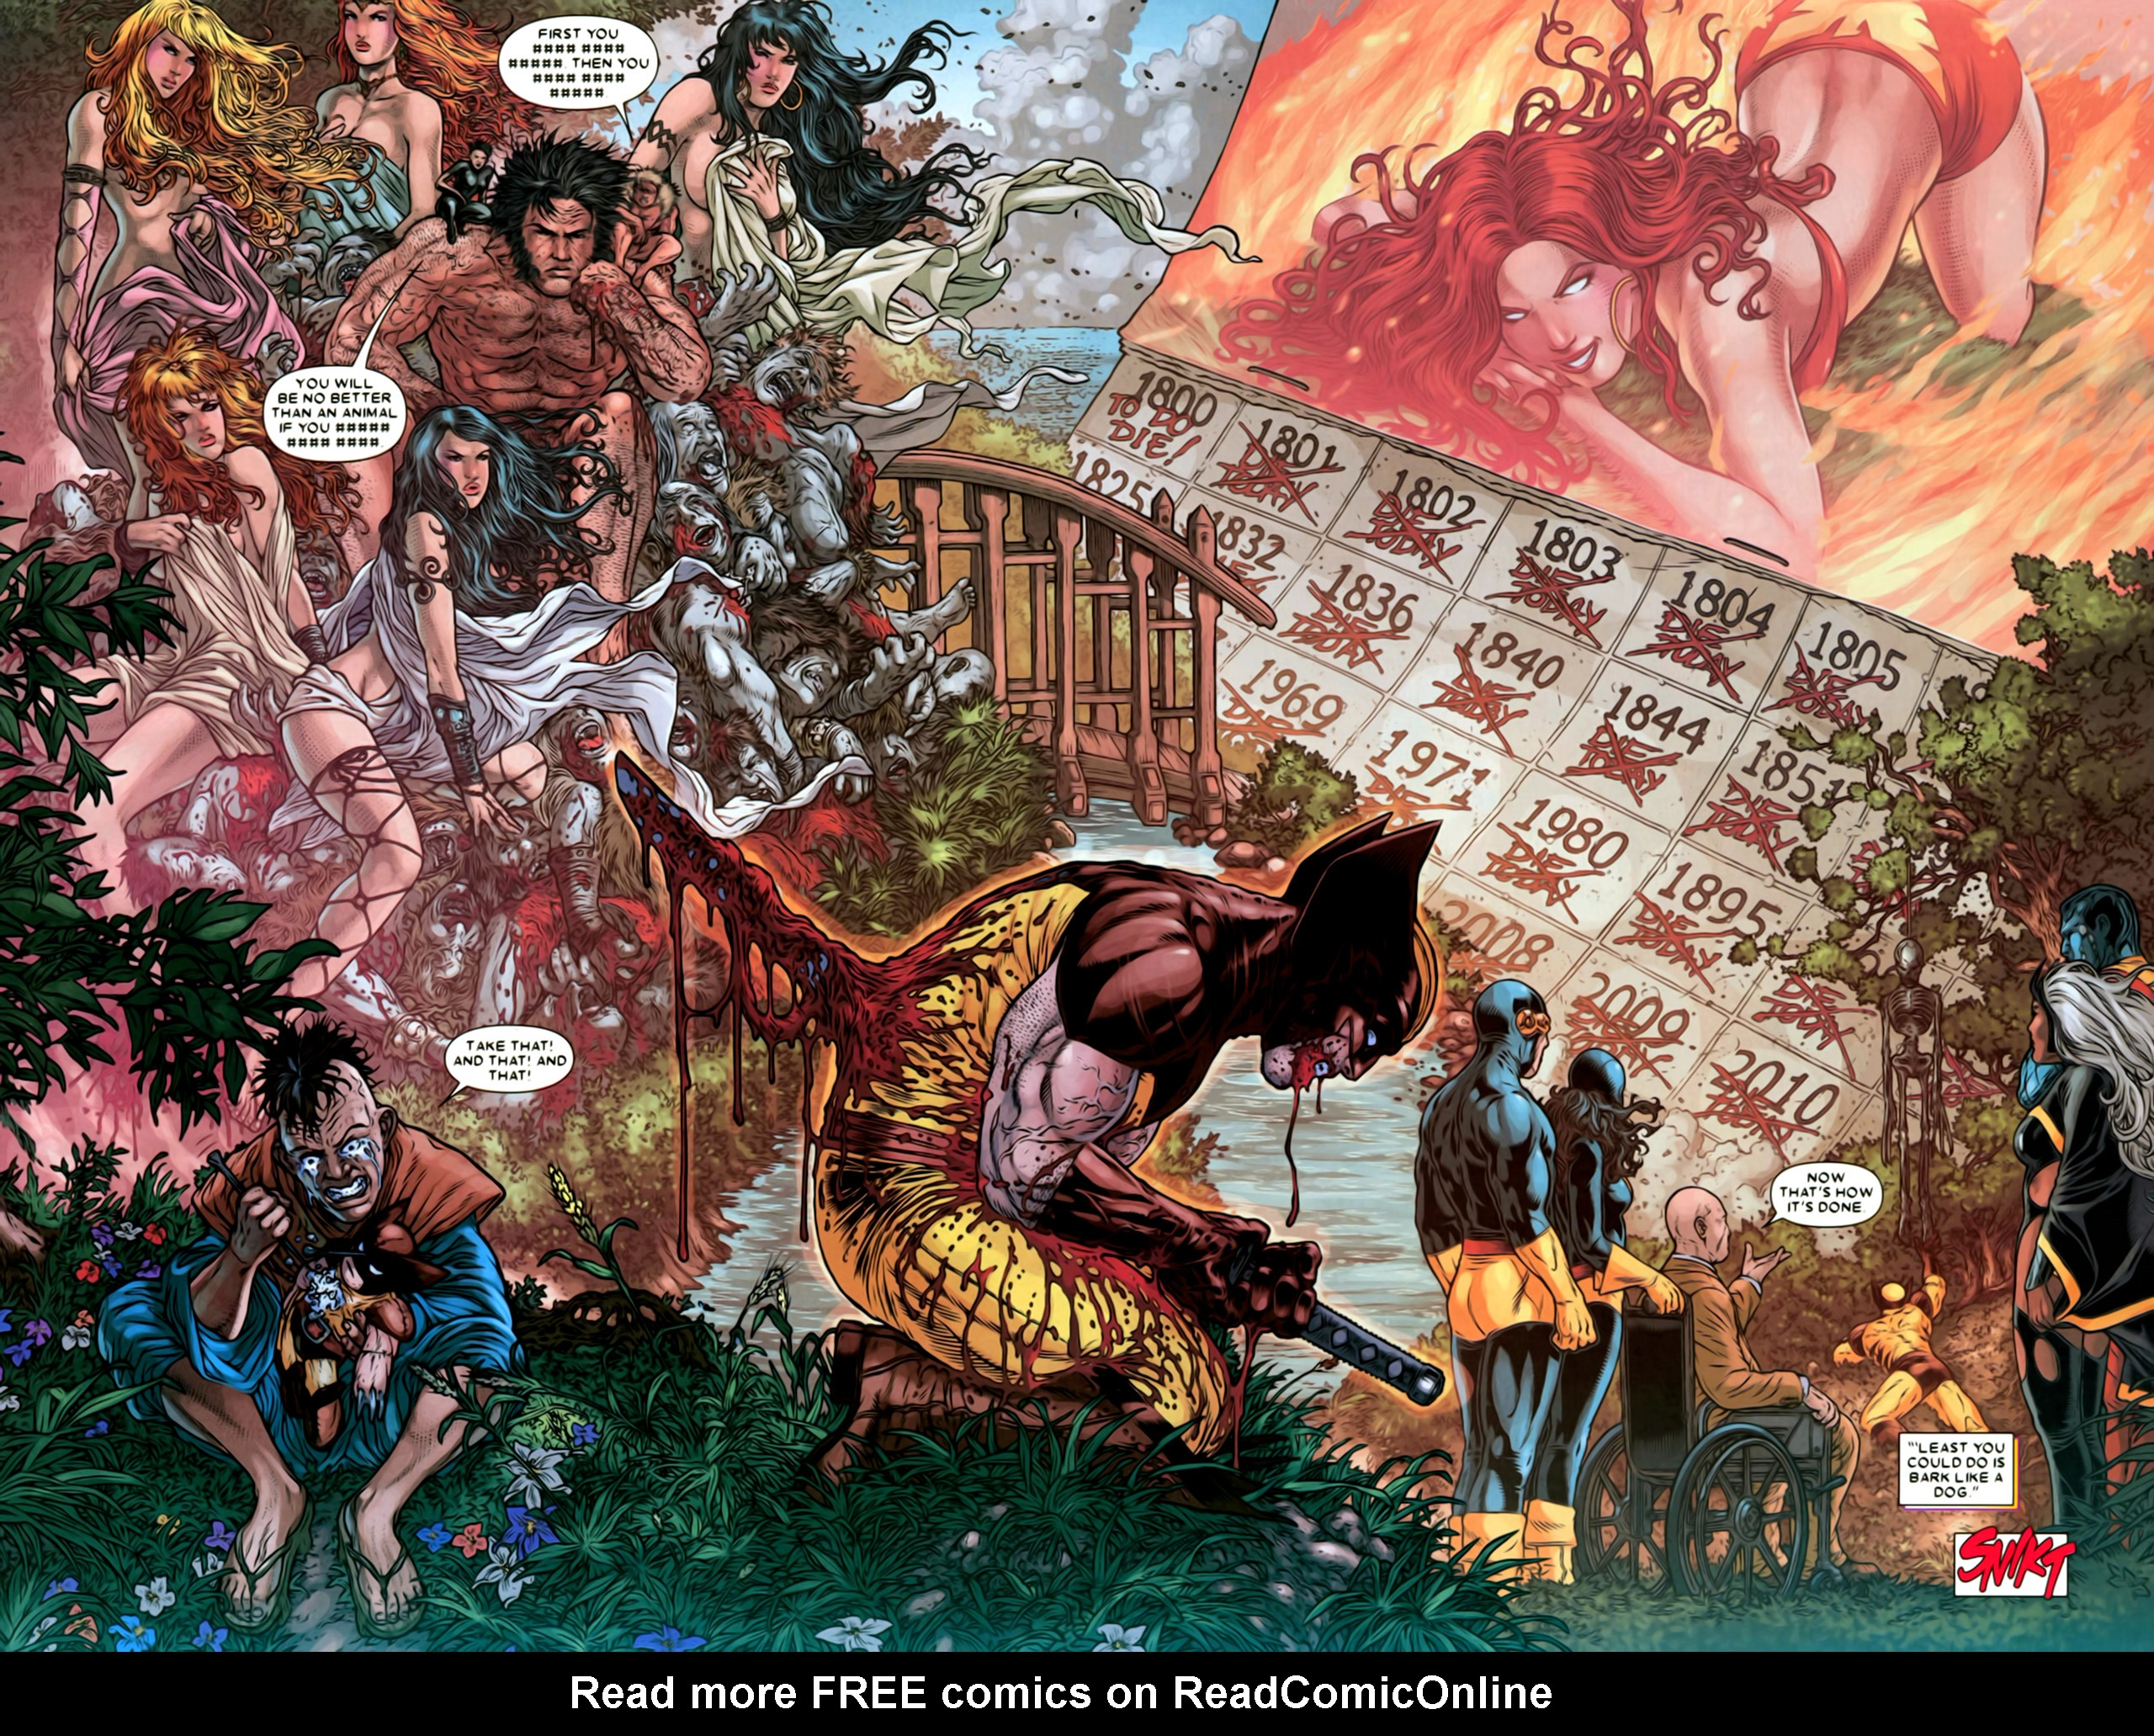 Read online Wolverine: The Best There Is comic -  Issue #2 - 14